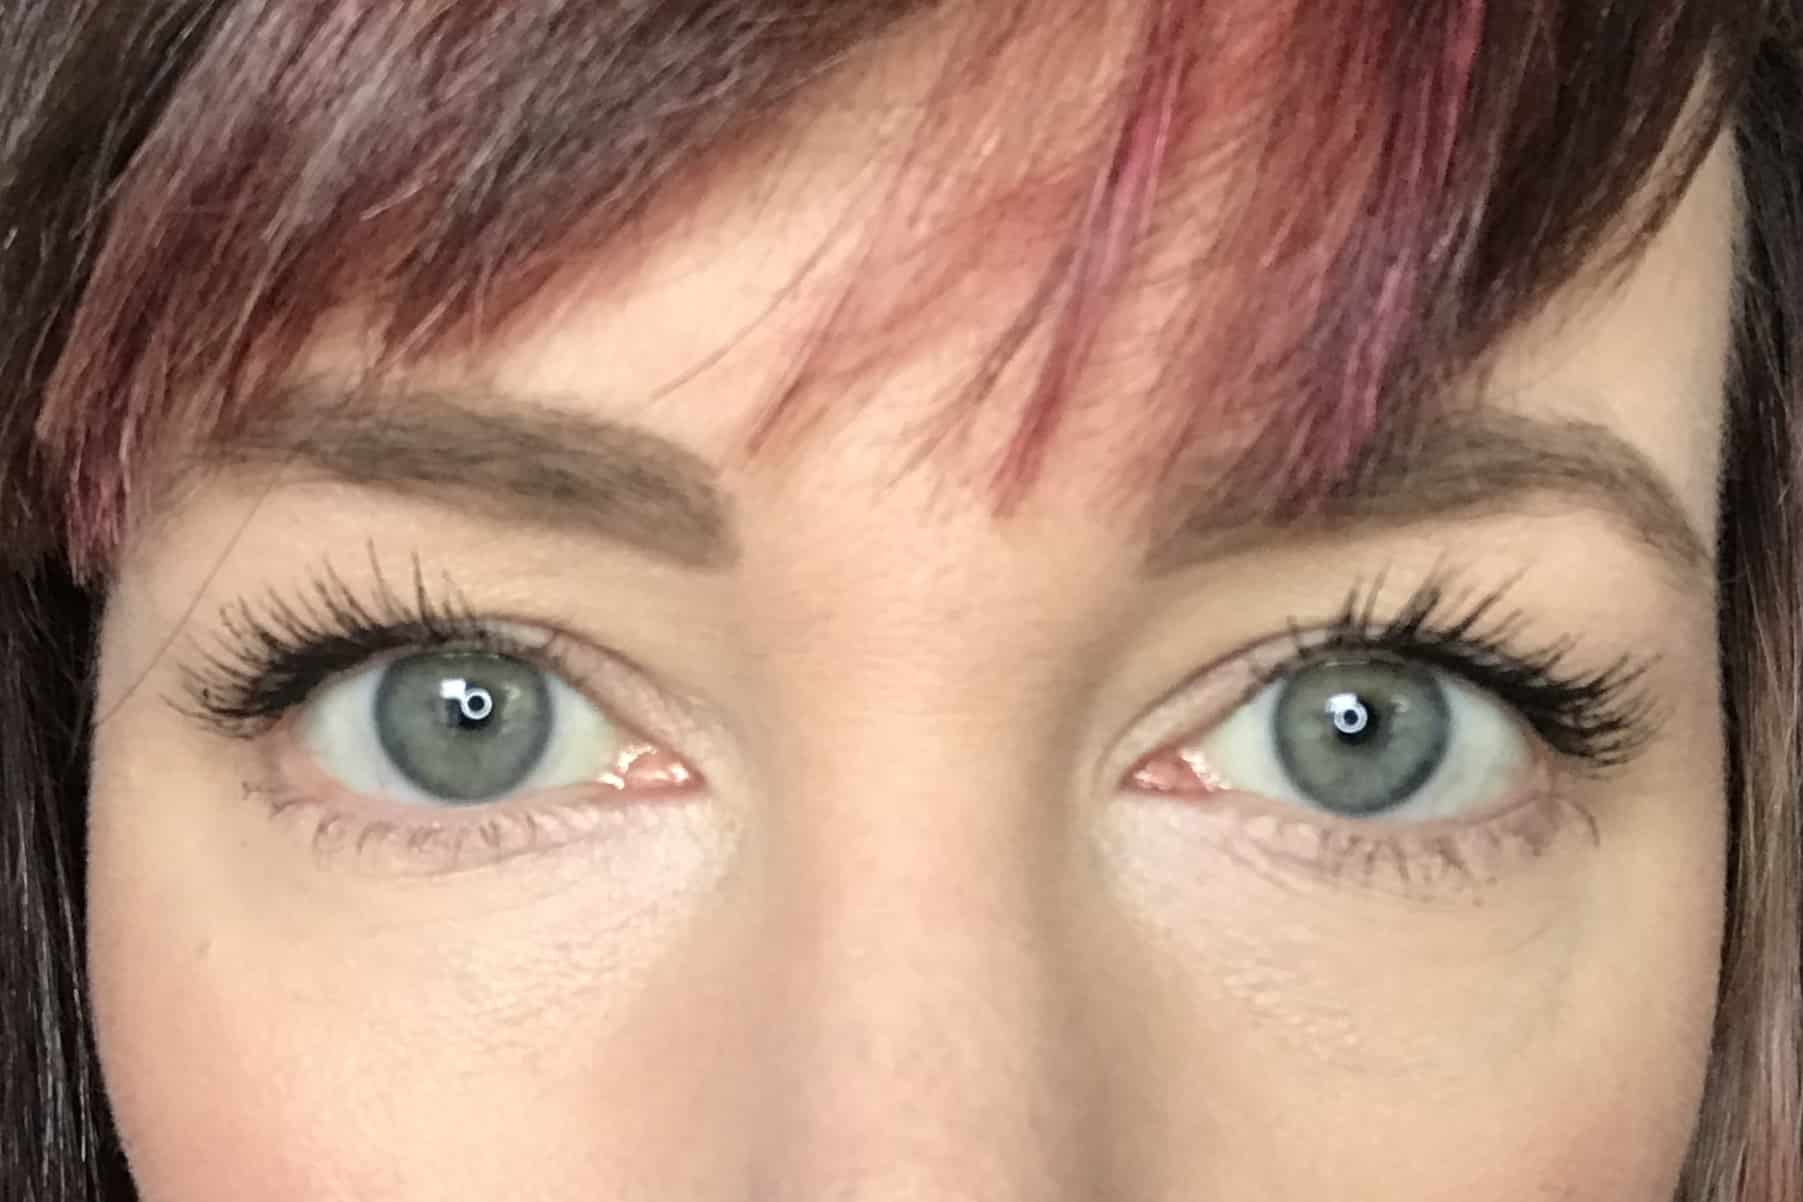 Two coats of Cosm'etika Mascara